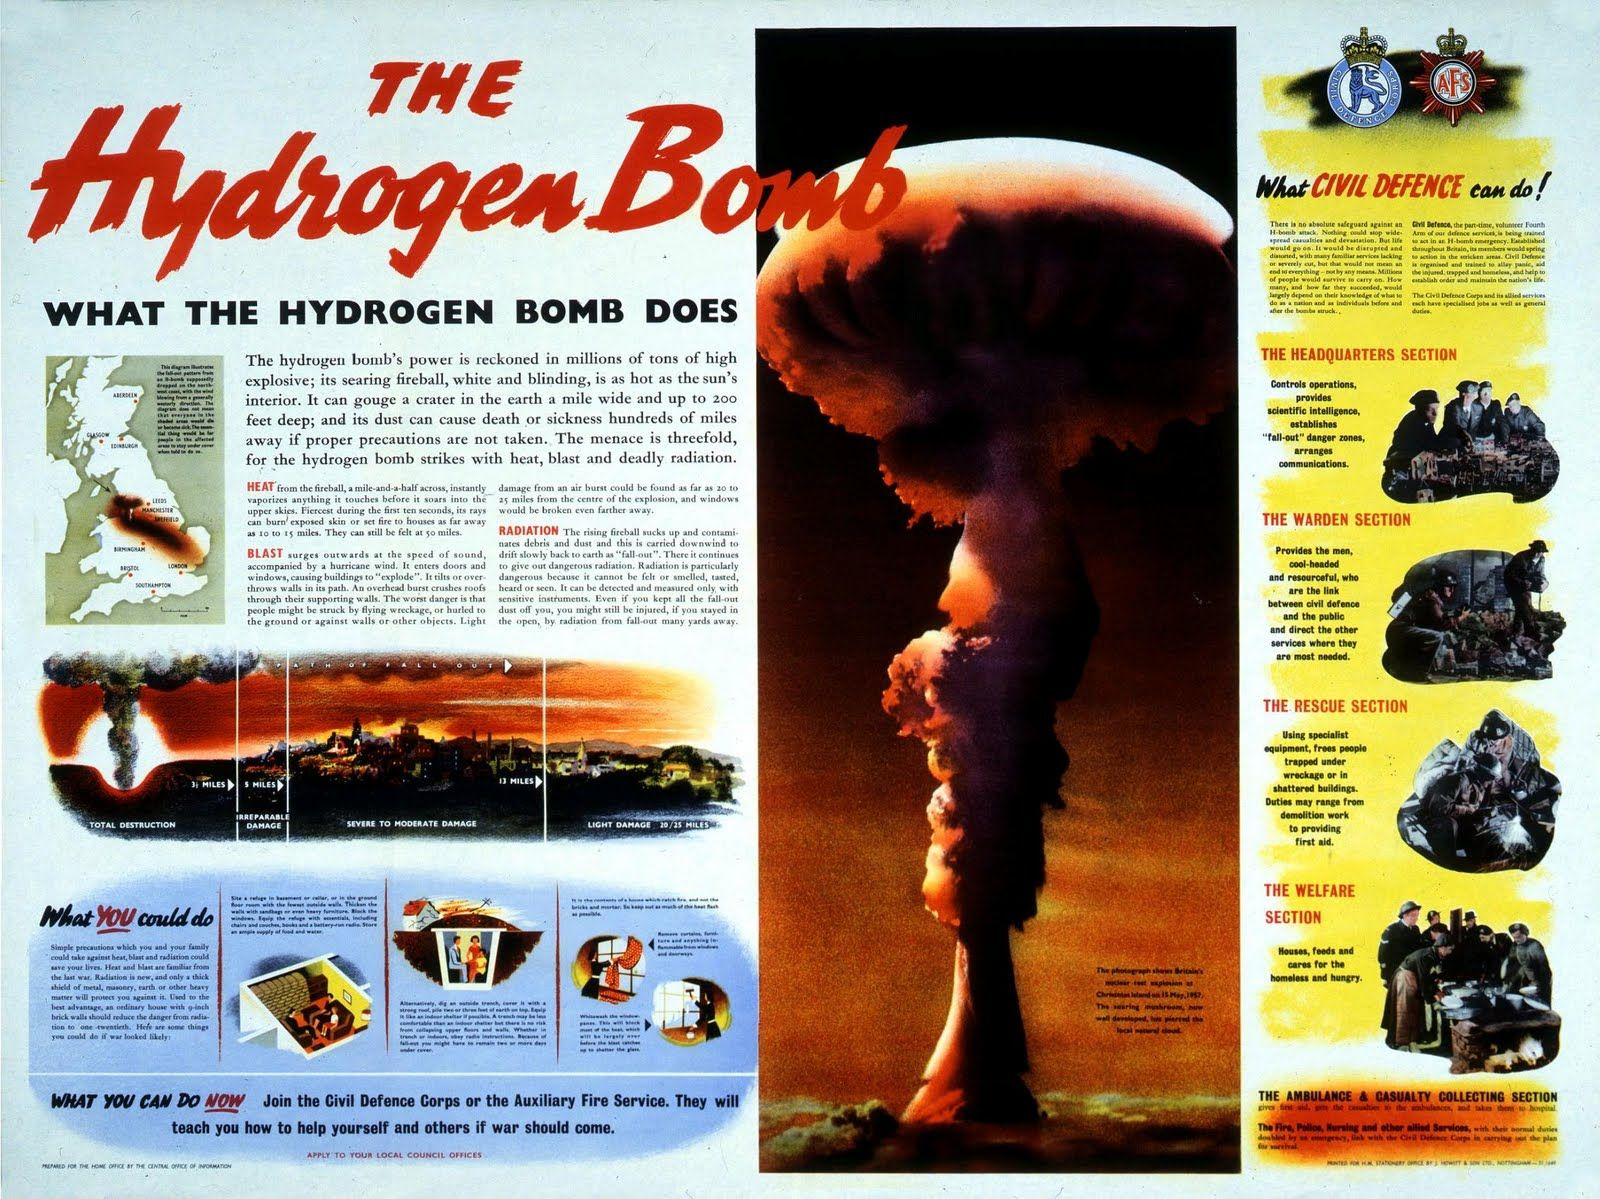 Writing my research paper the hydrogen bomb and nuclear warfare